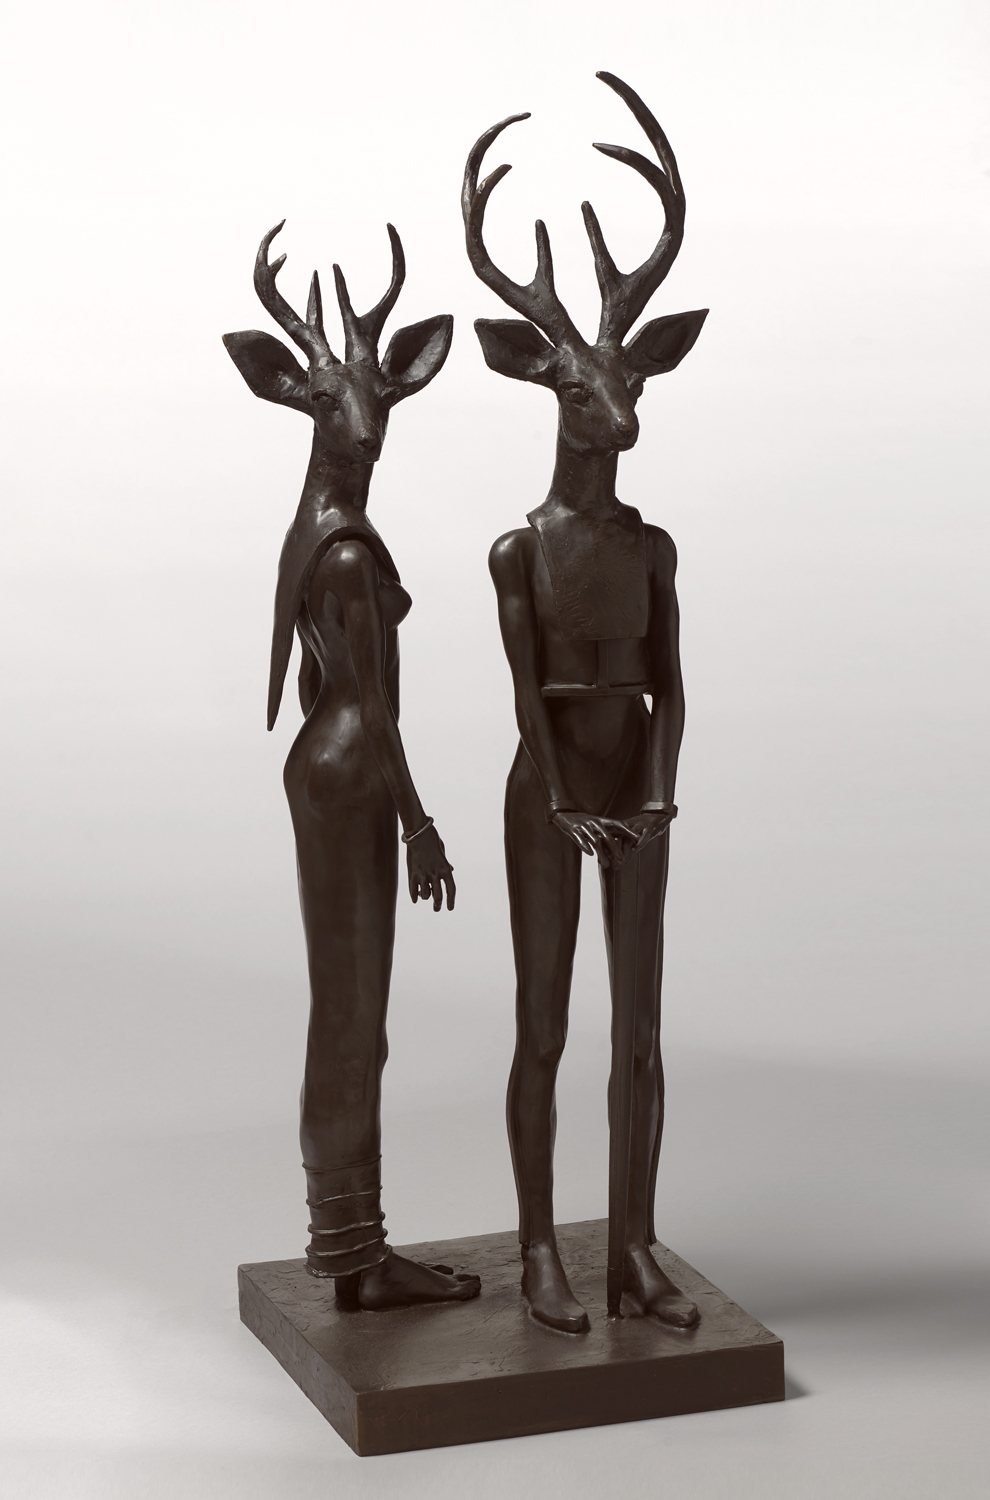 Venados,  2019 bronze 41 x 14 x 14 inches; 104.1 x 35.6 x 35.6 centimeters